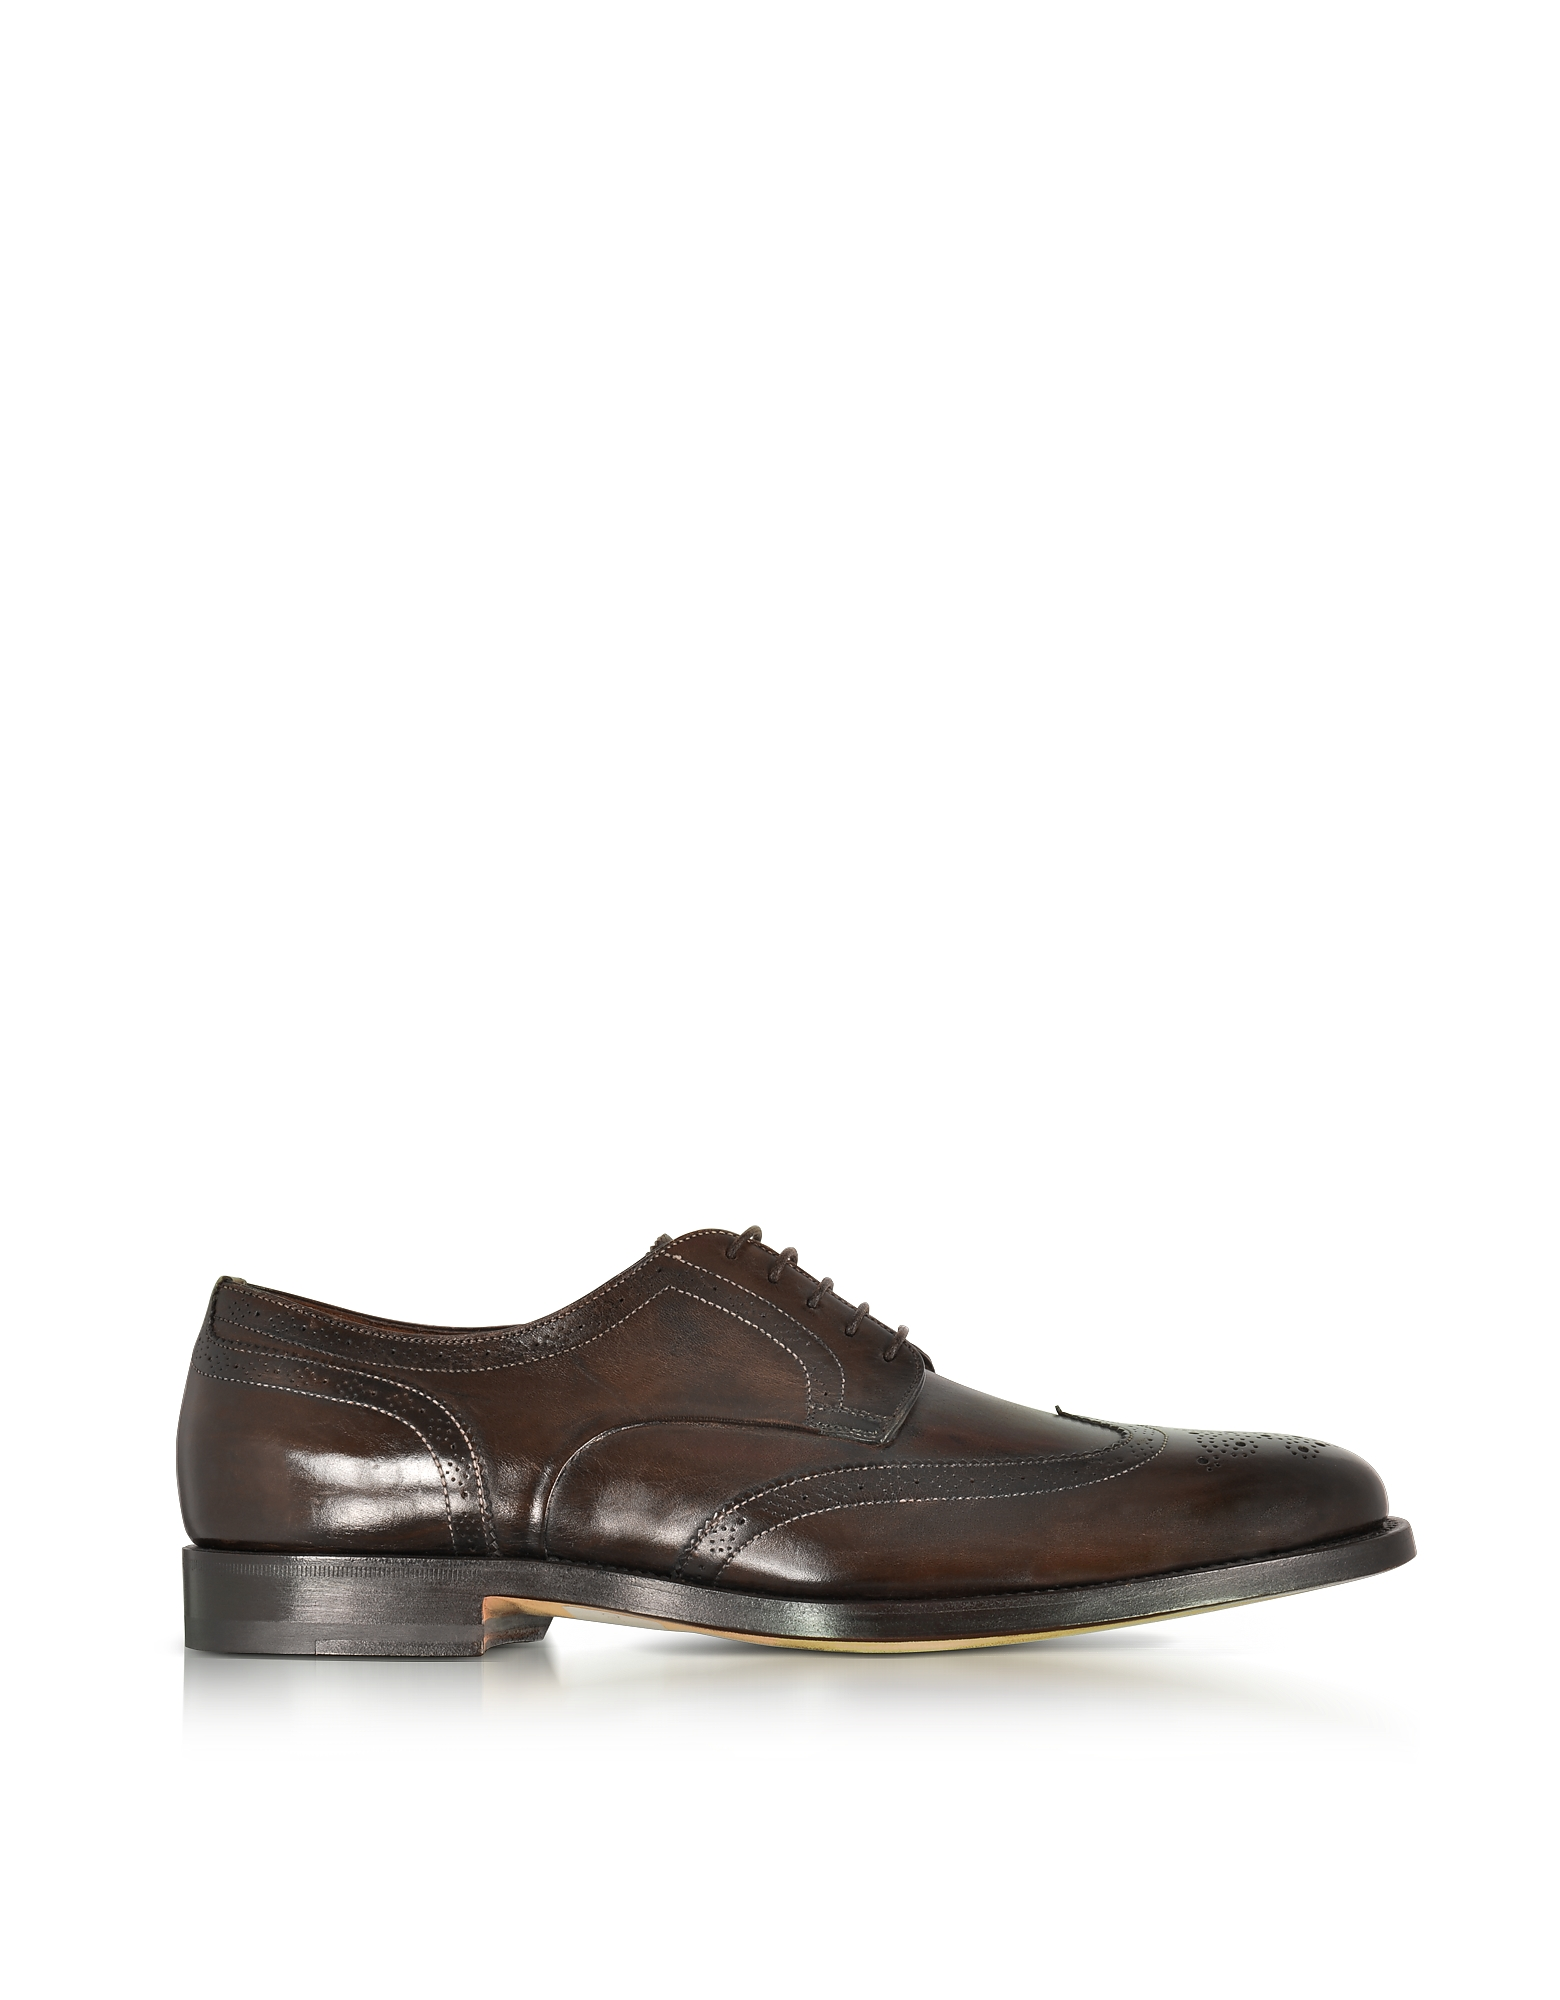 Santoni Shoes, Wilson Dark Brown Leather Wingtip Derby Shoes